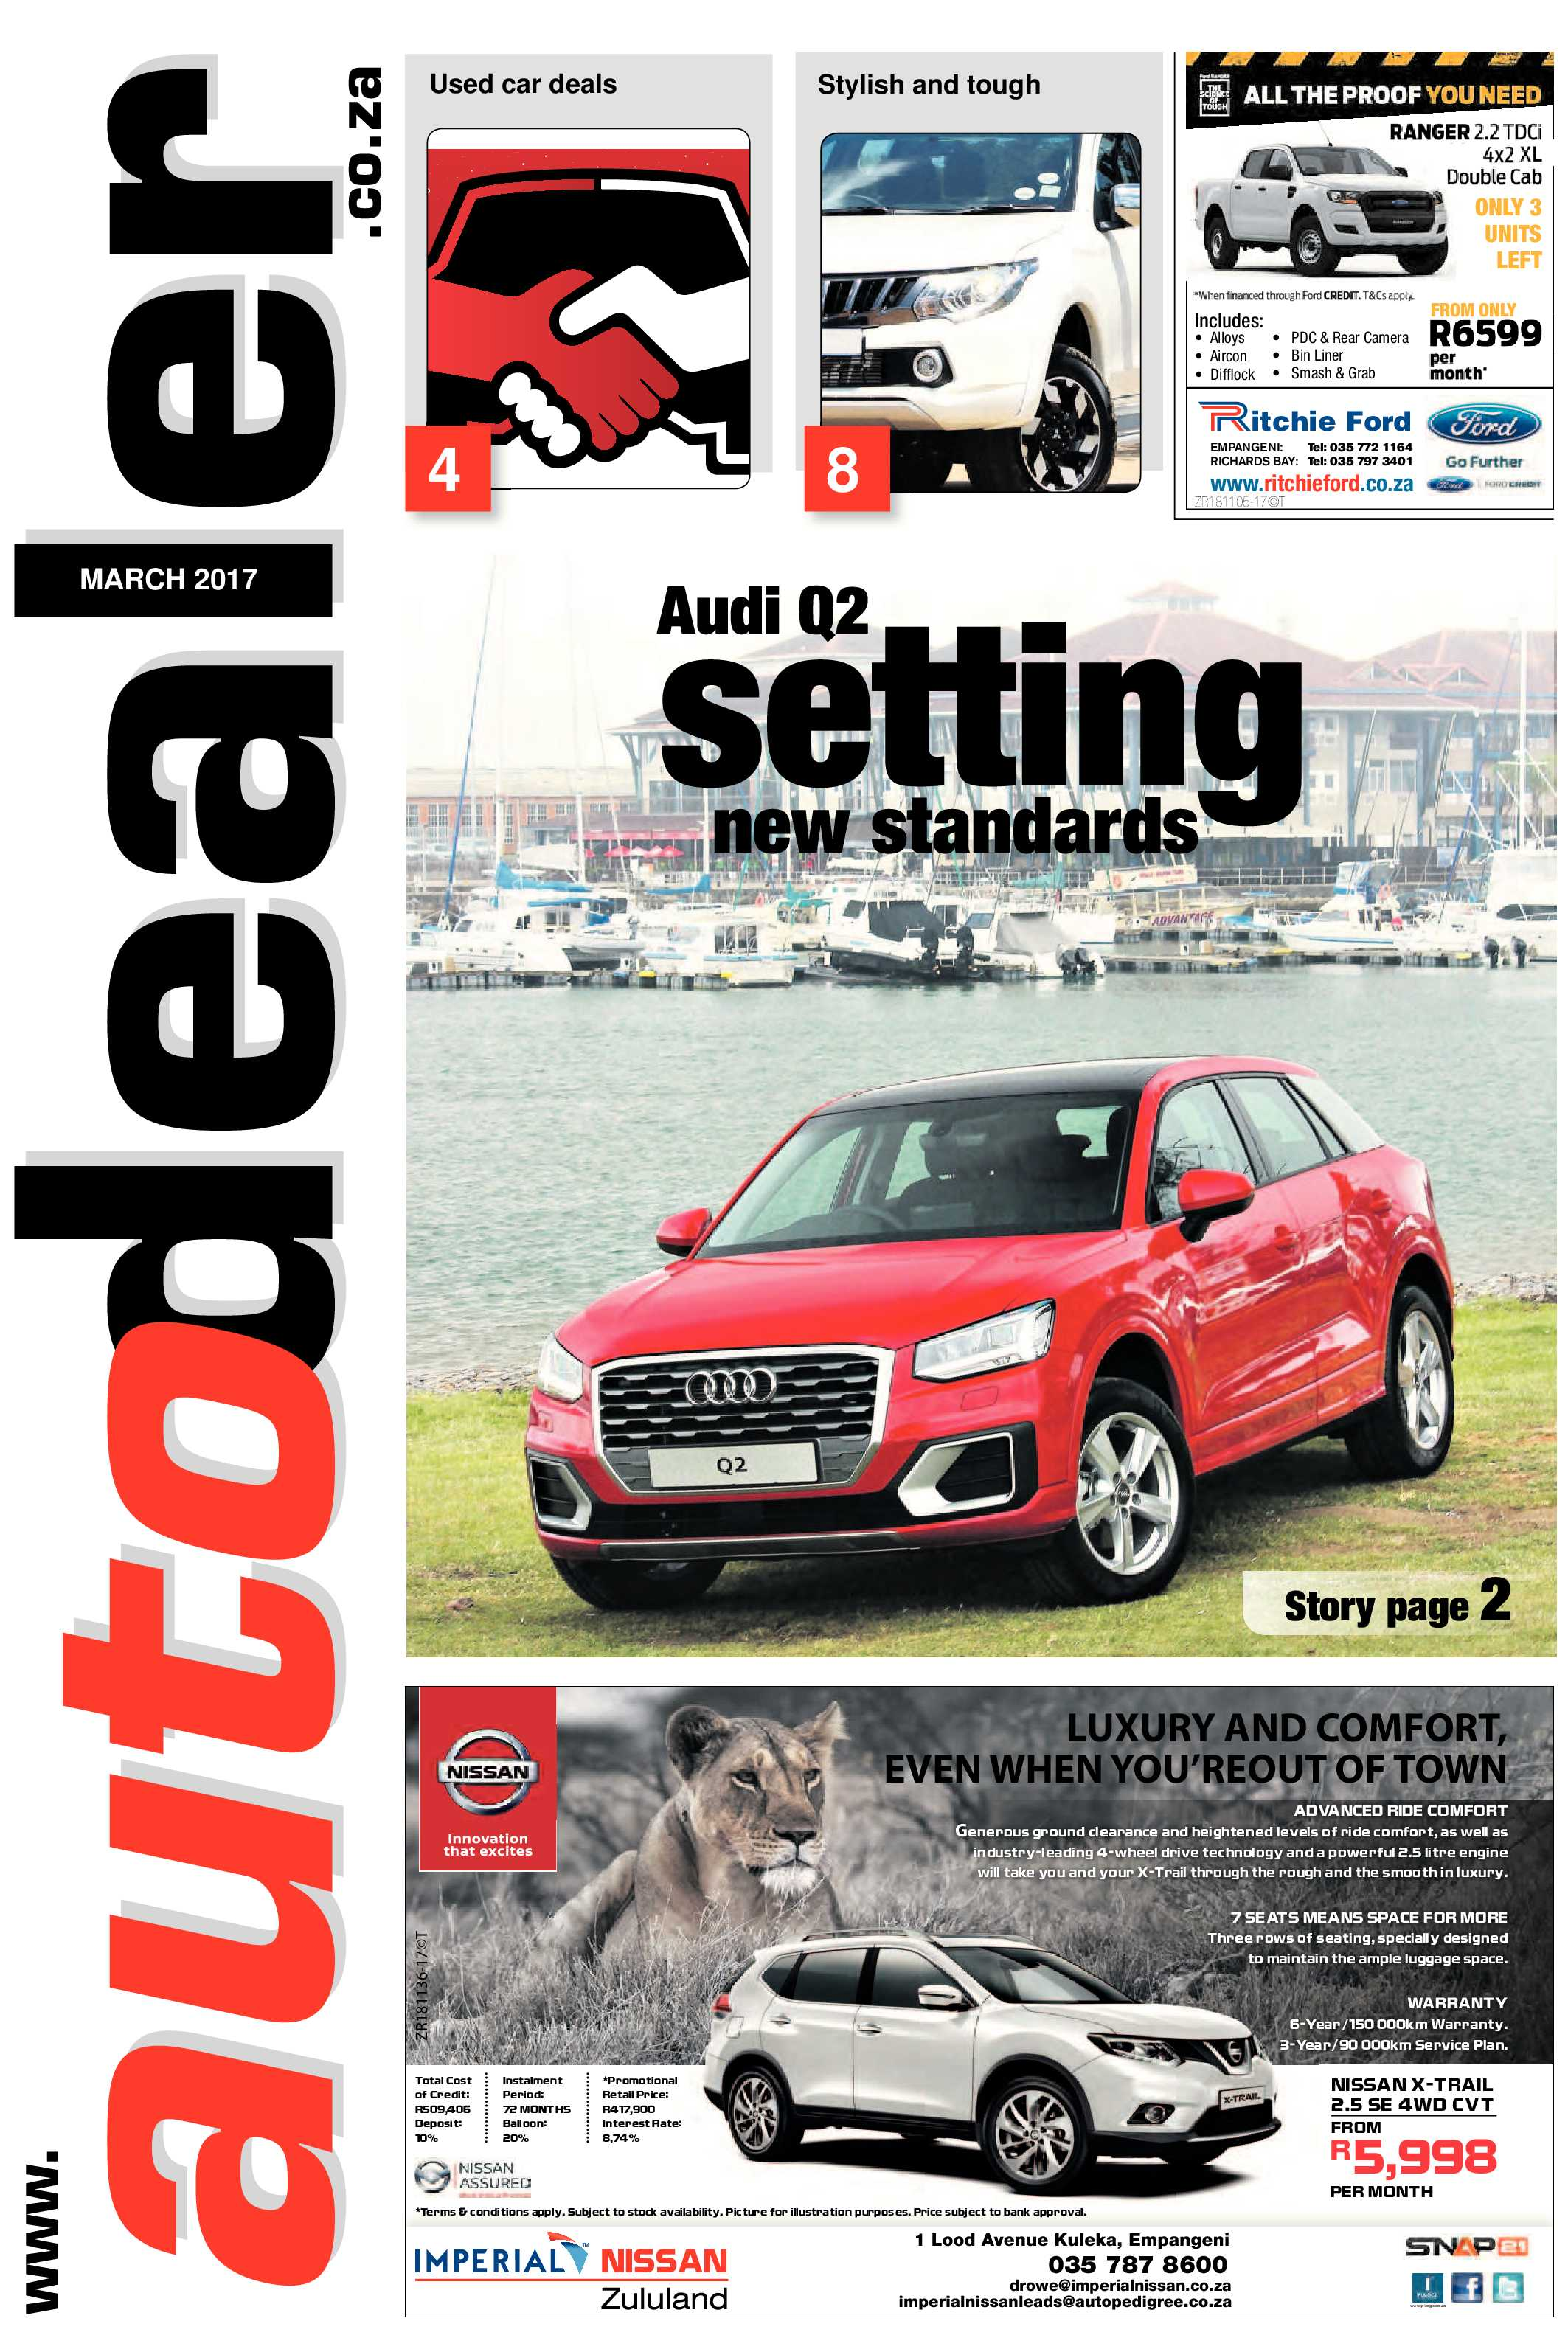 zululand-autodealer-march-2017-epapers-page-1